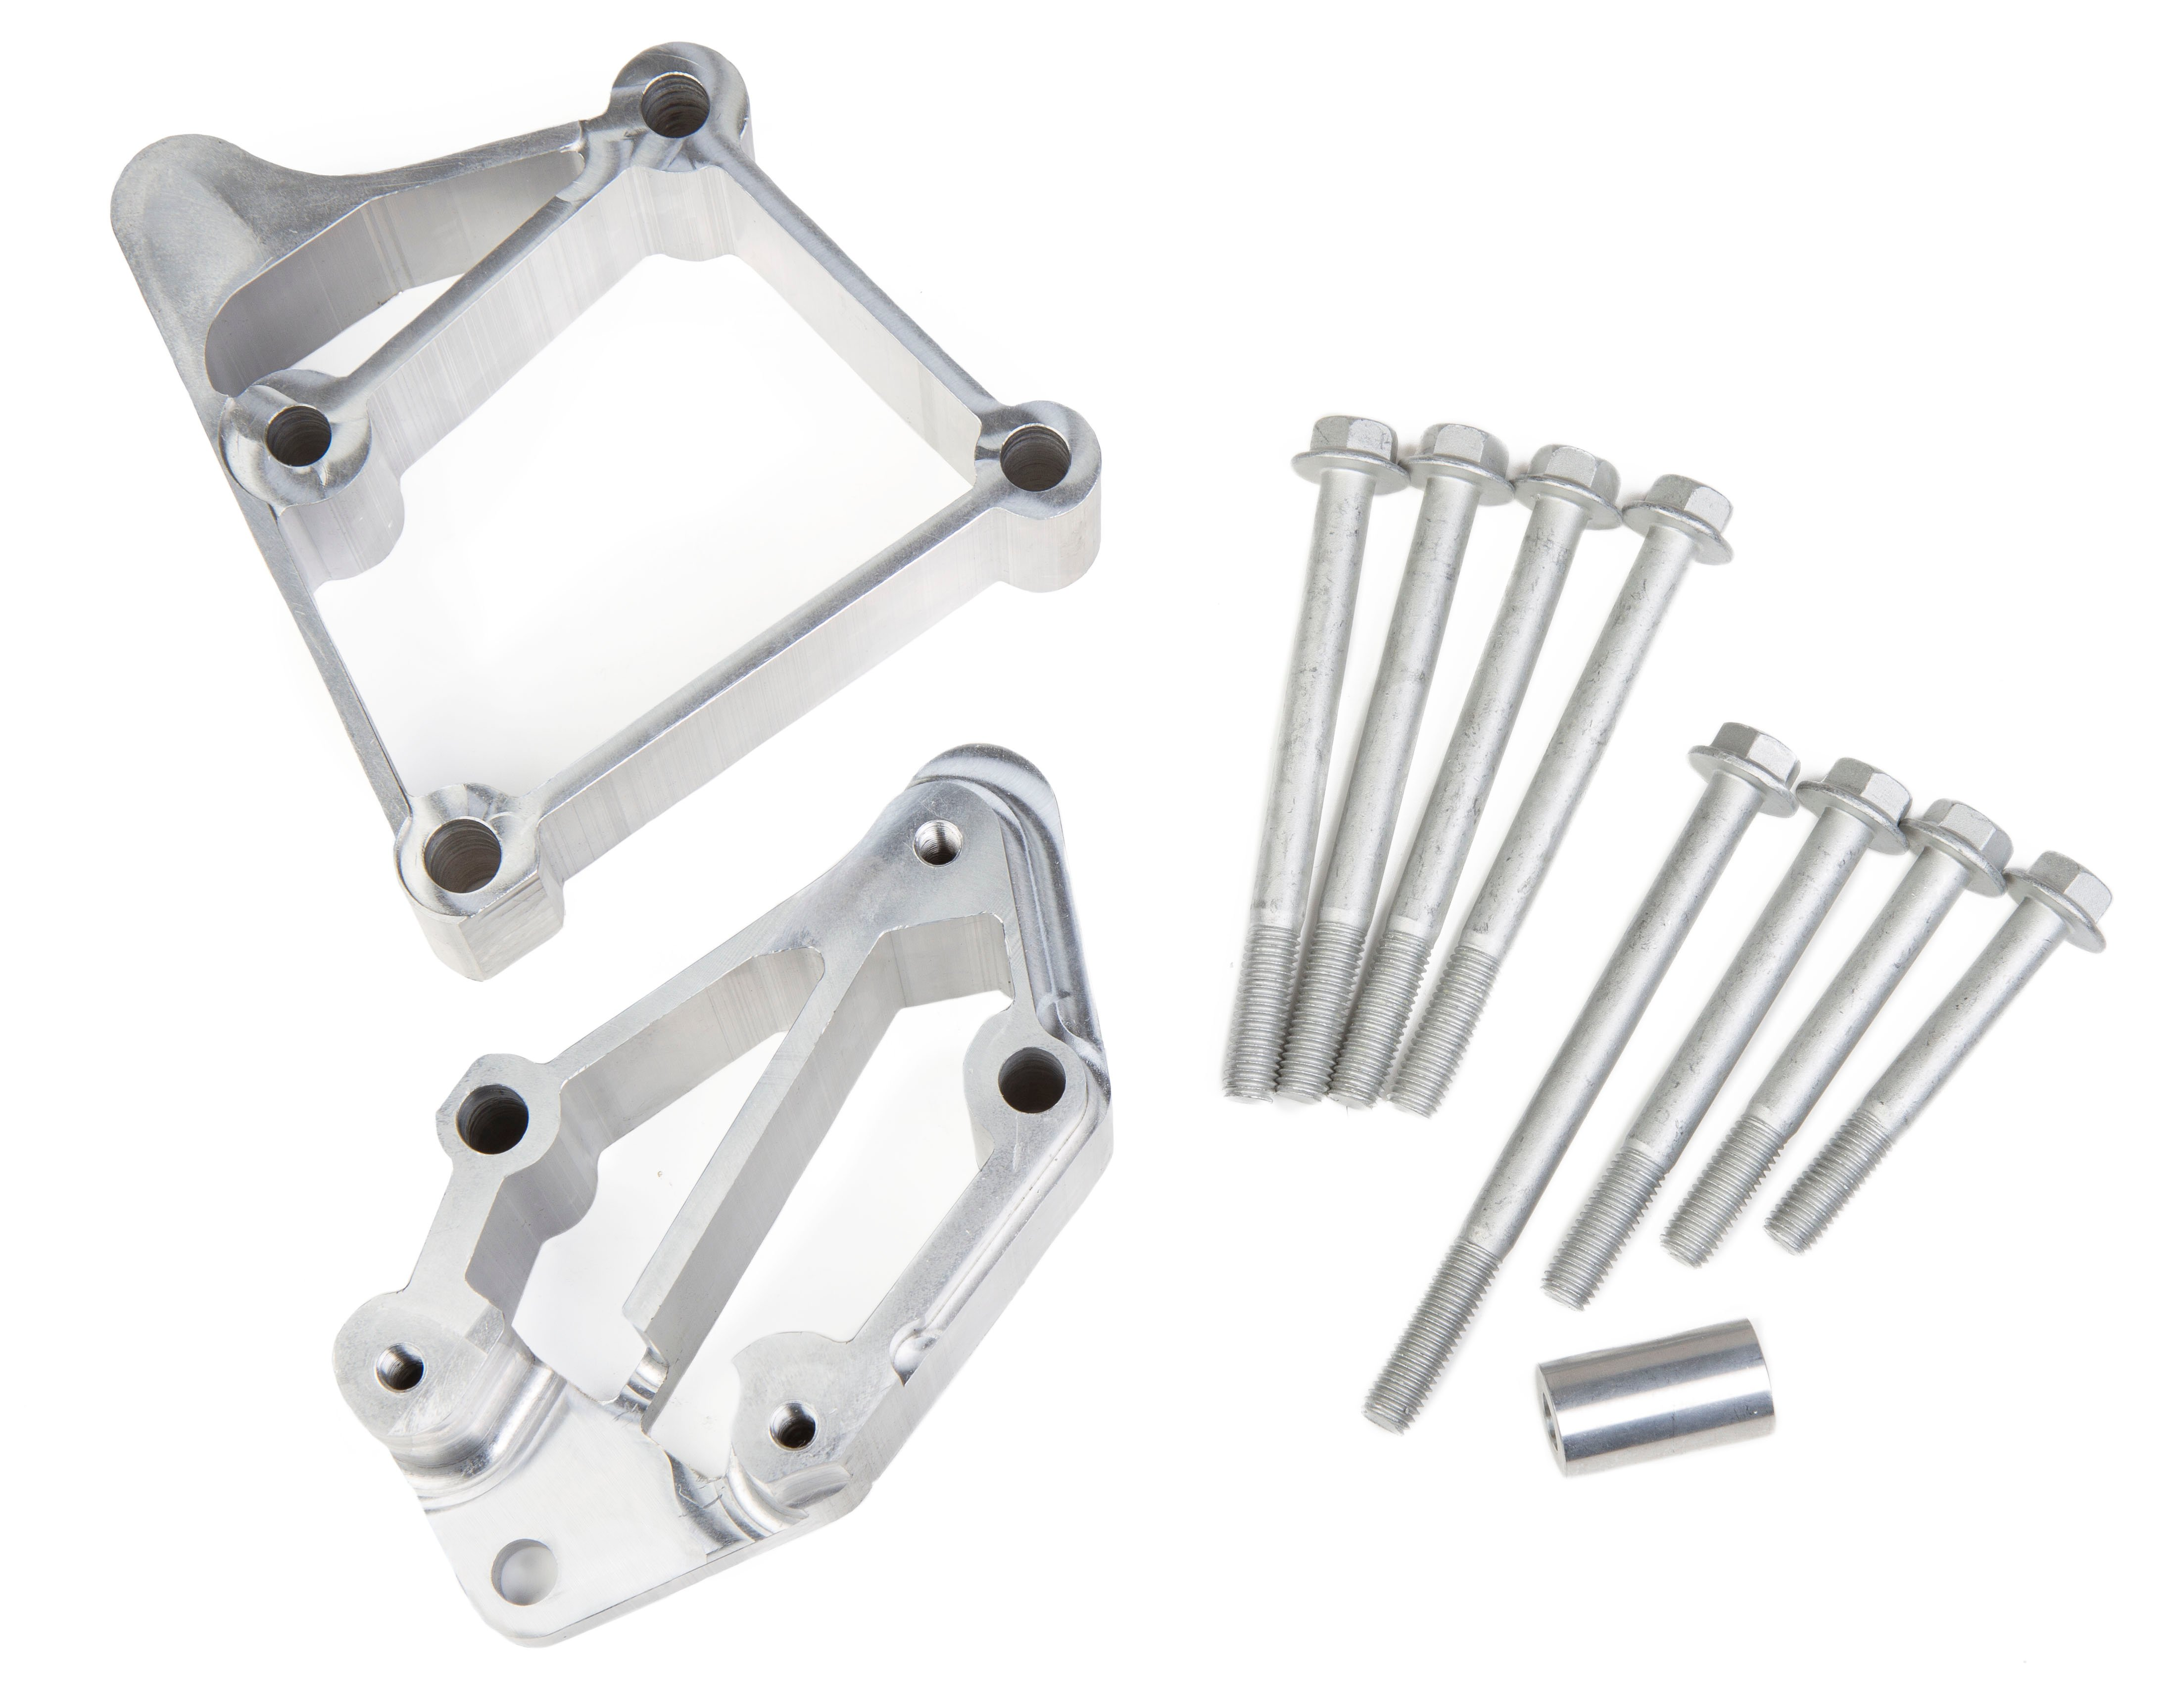 Holley 20 134 Ls A C Accessory Drive Bracket Fits Sanden Sd508 Or Ac Compressor Brackets Diagram For 1978 Corvette Installation Kit Long Alignment